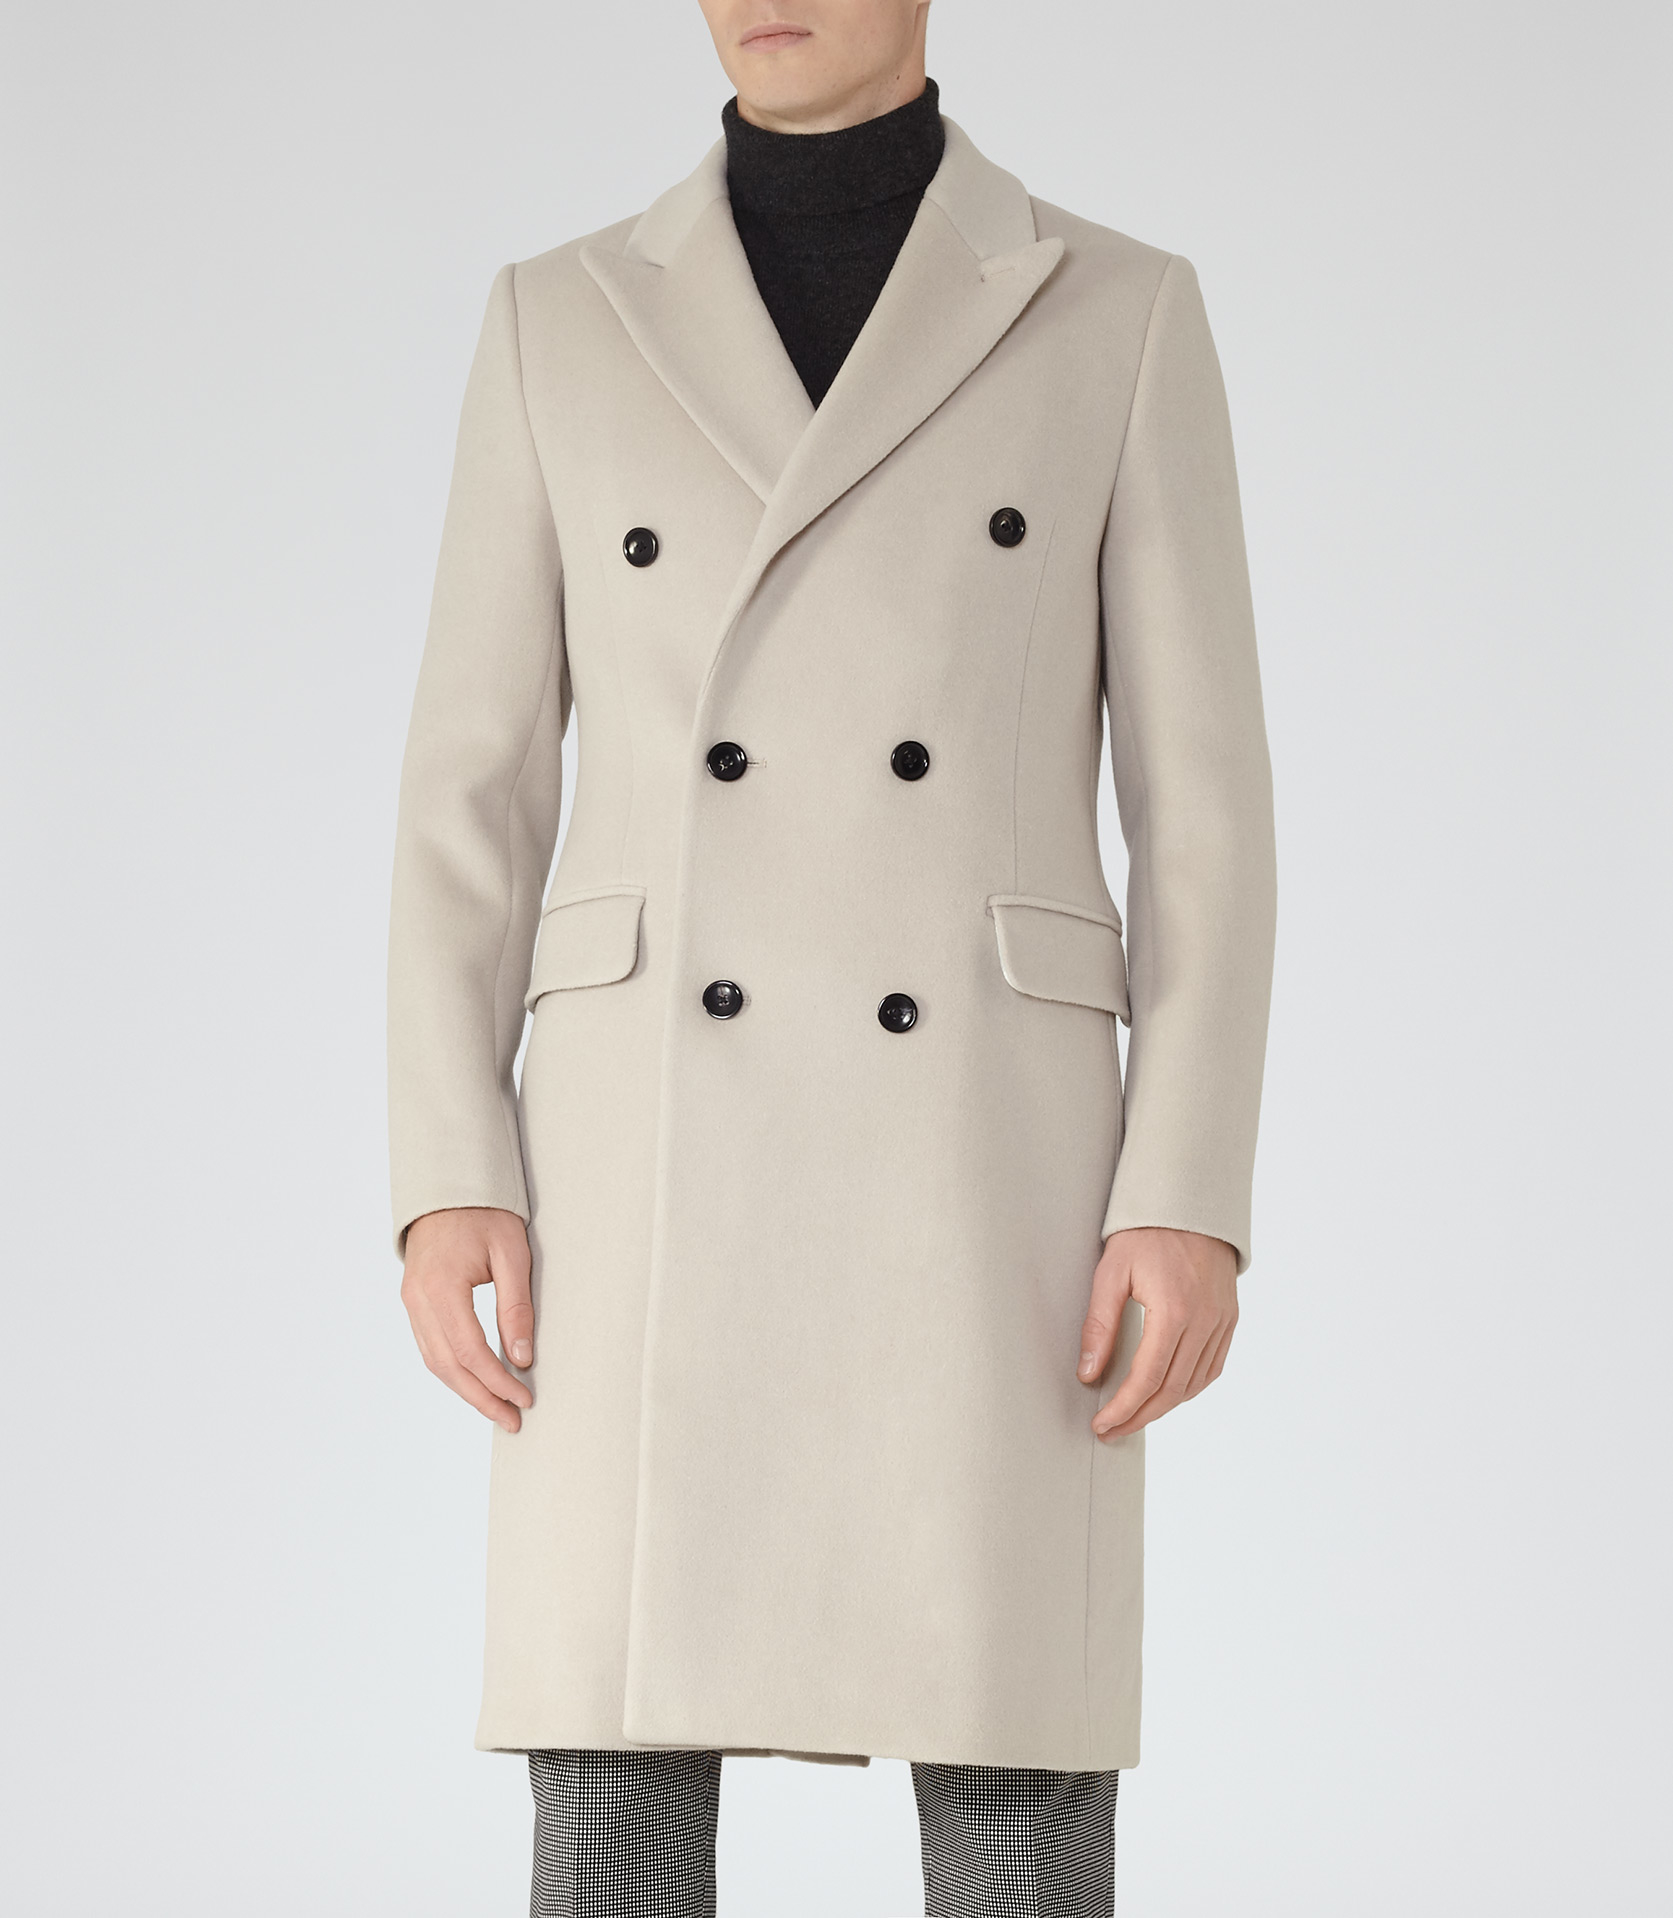 Reiss Cormier Double Breasted Overcoat In Natural For Men